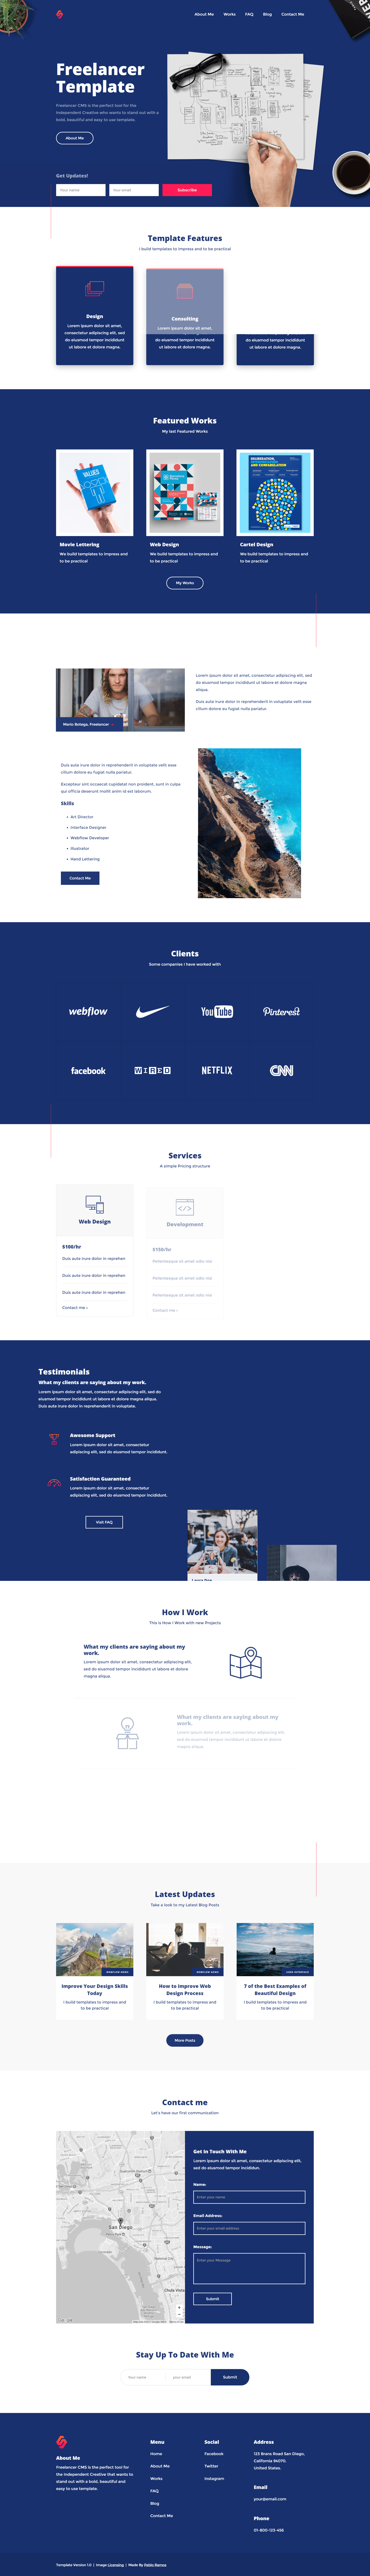 Freelancer - Meteorsites Website Design